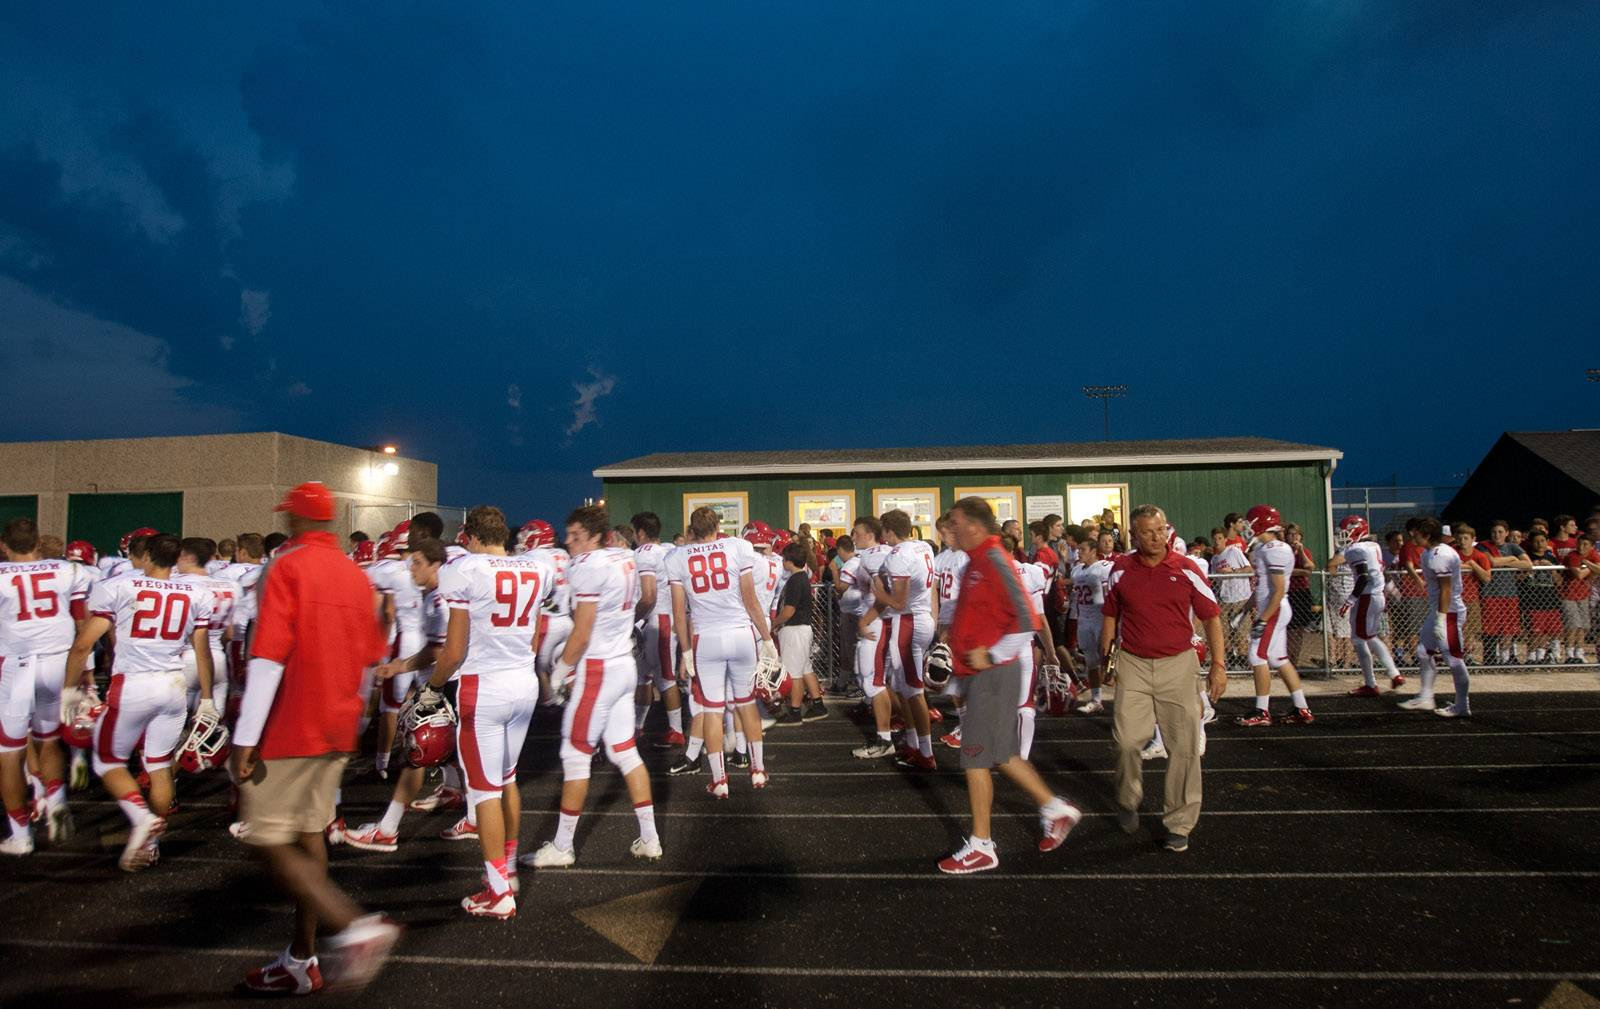 Naperville Central football players and coaches leave the field at Waubonsie Valley. The game was postponed due to lightning.